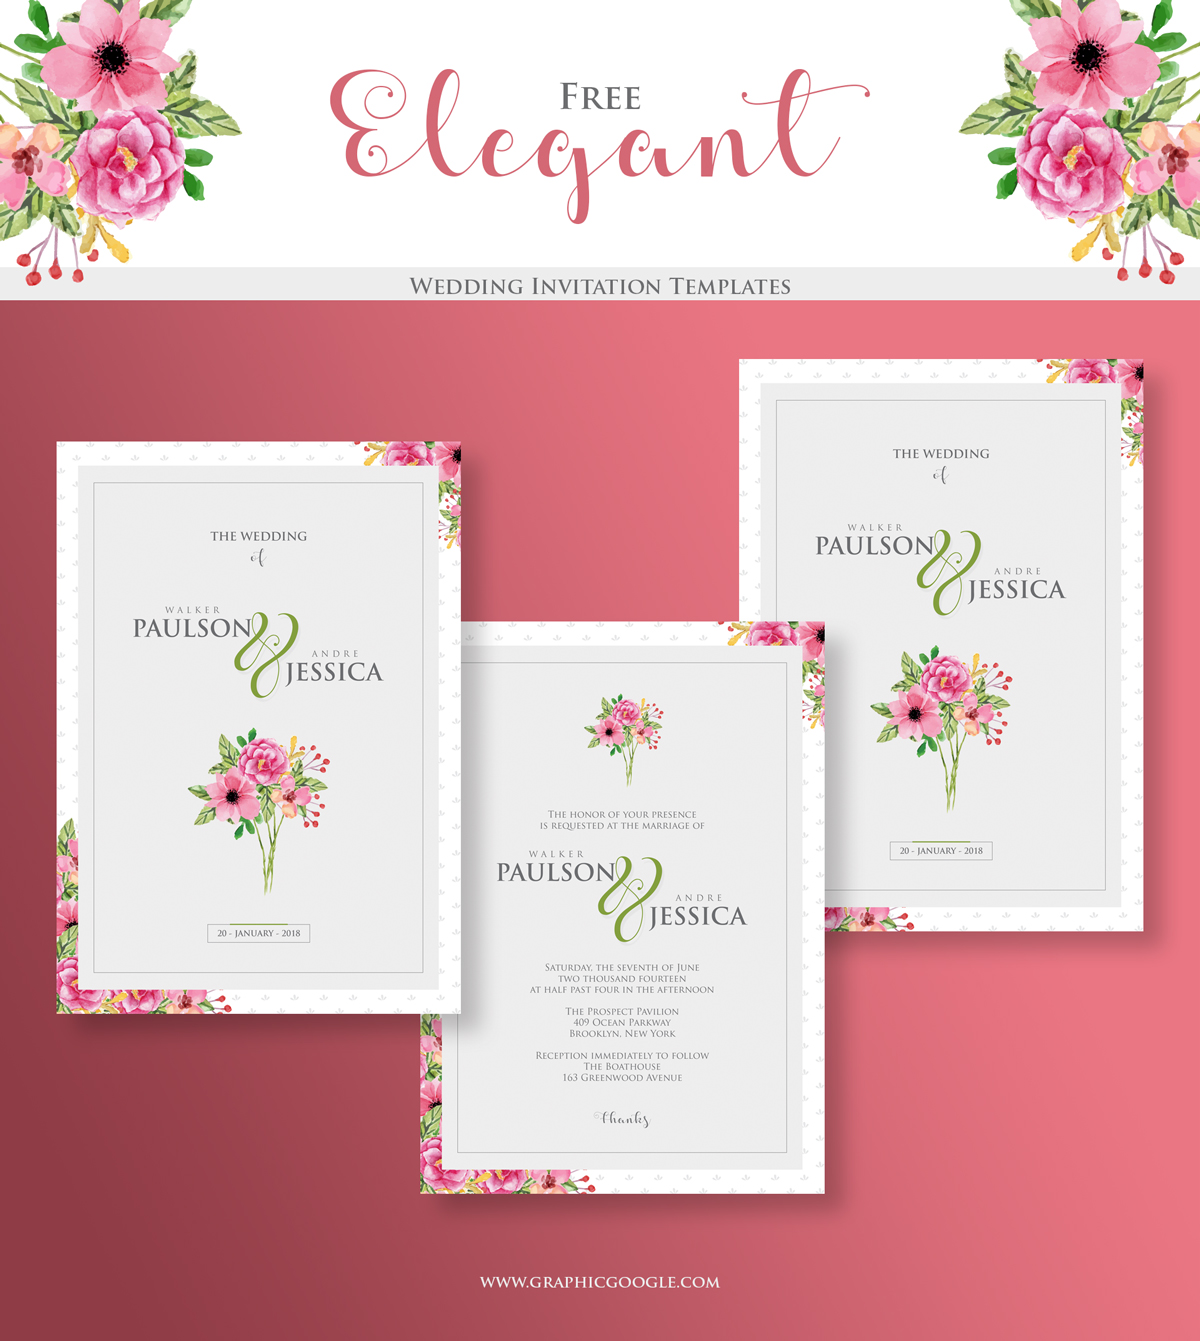 wedding invitation templates free download - free elegant wedding invitation templates